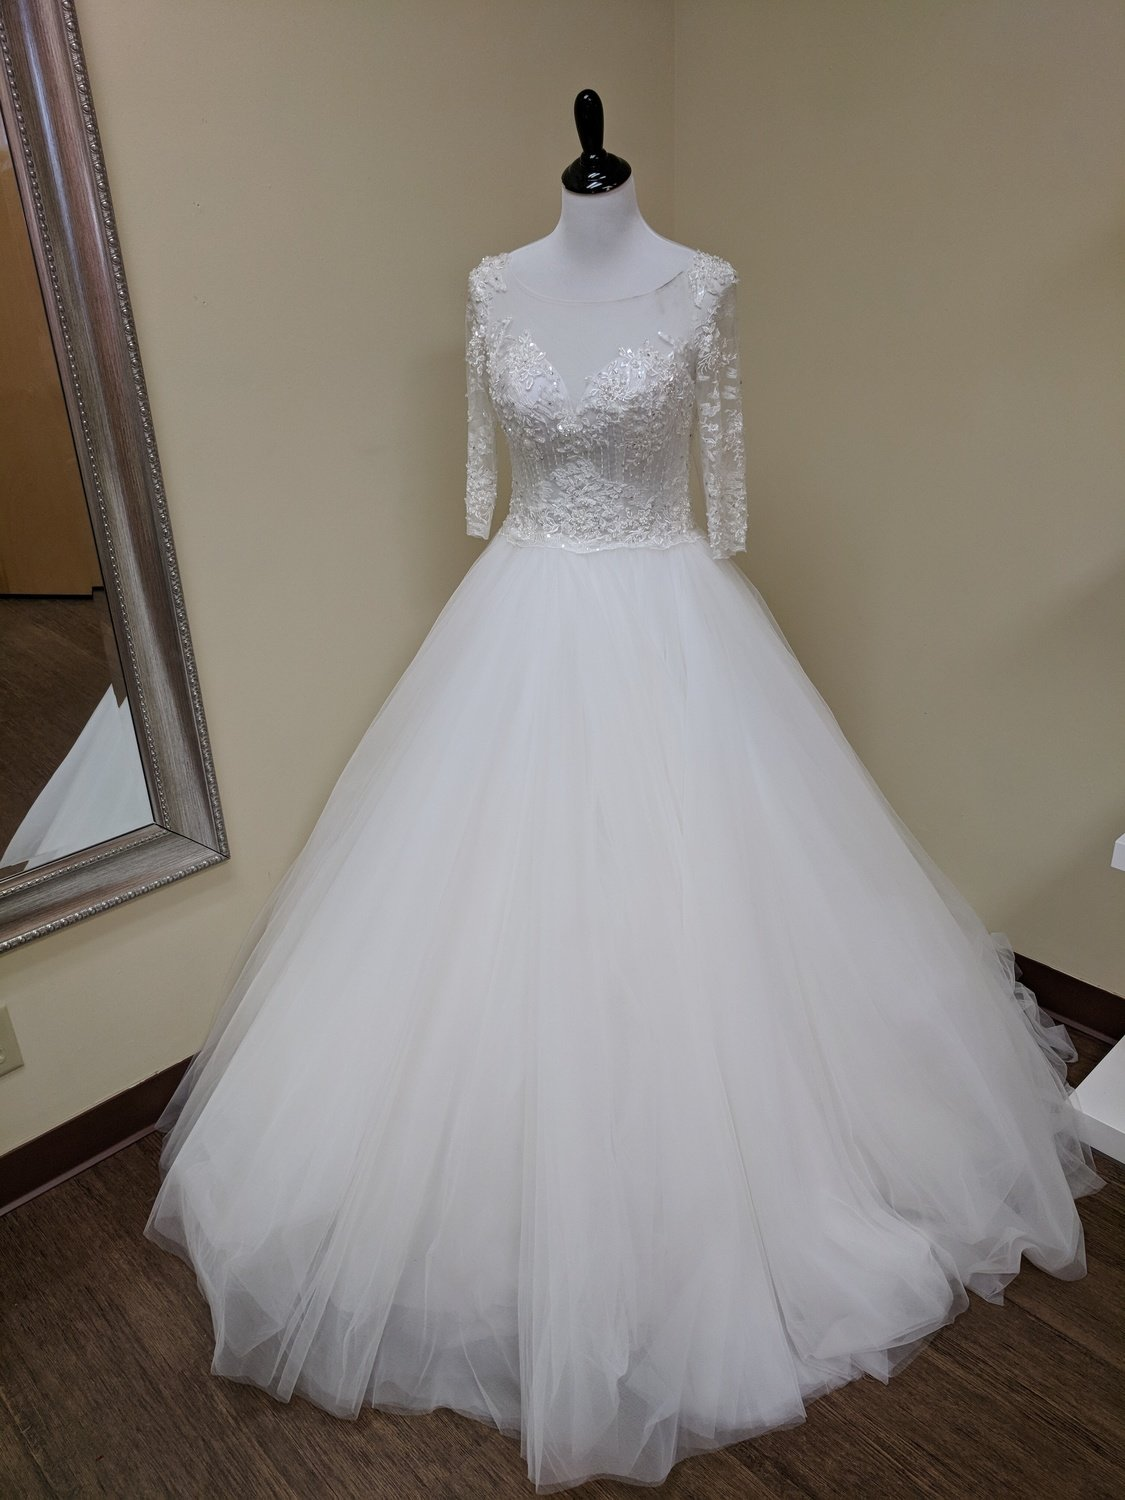 Gorgeous Vintage Inspired Wedding Dress Size 0 2 Off The Rack Only